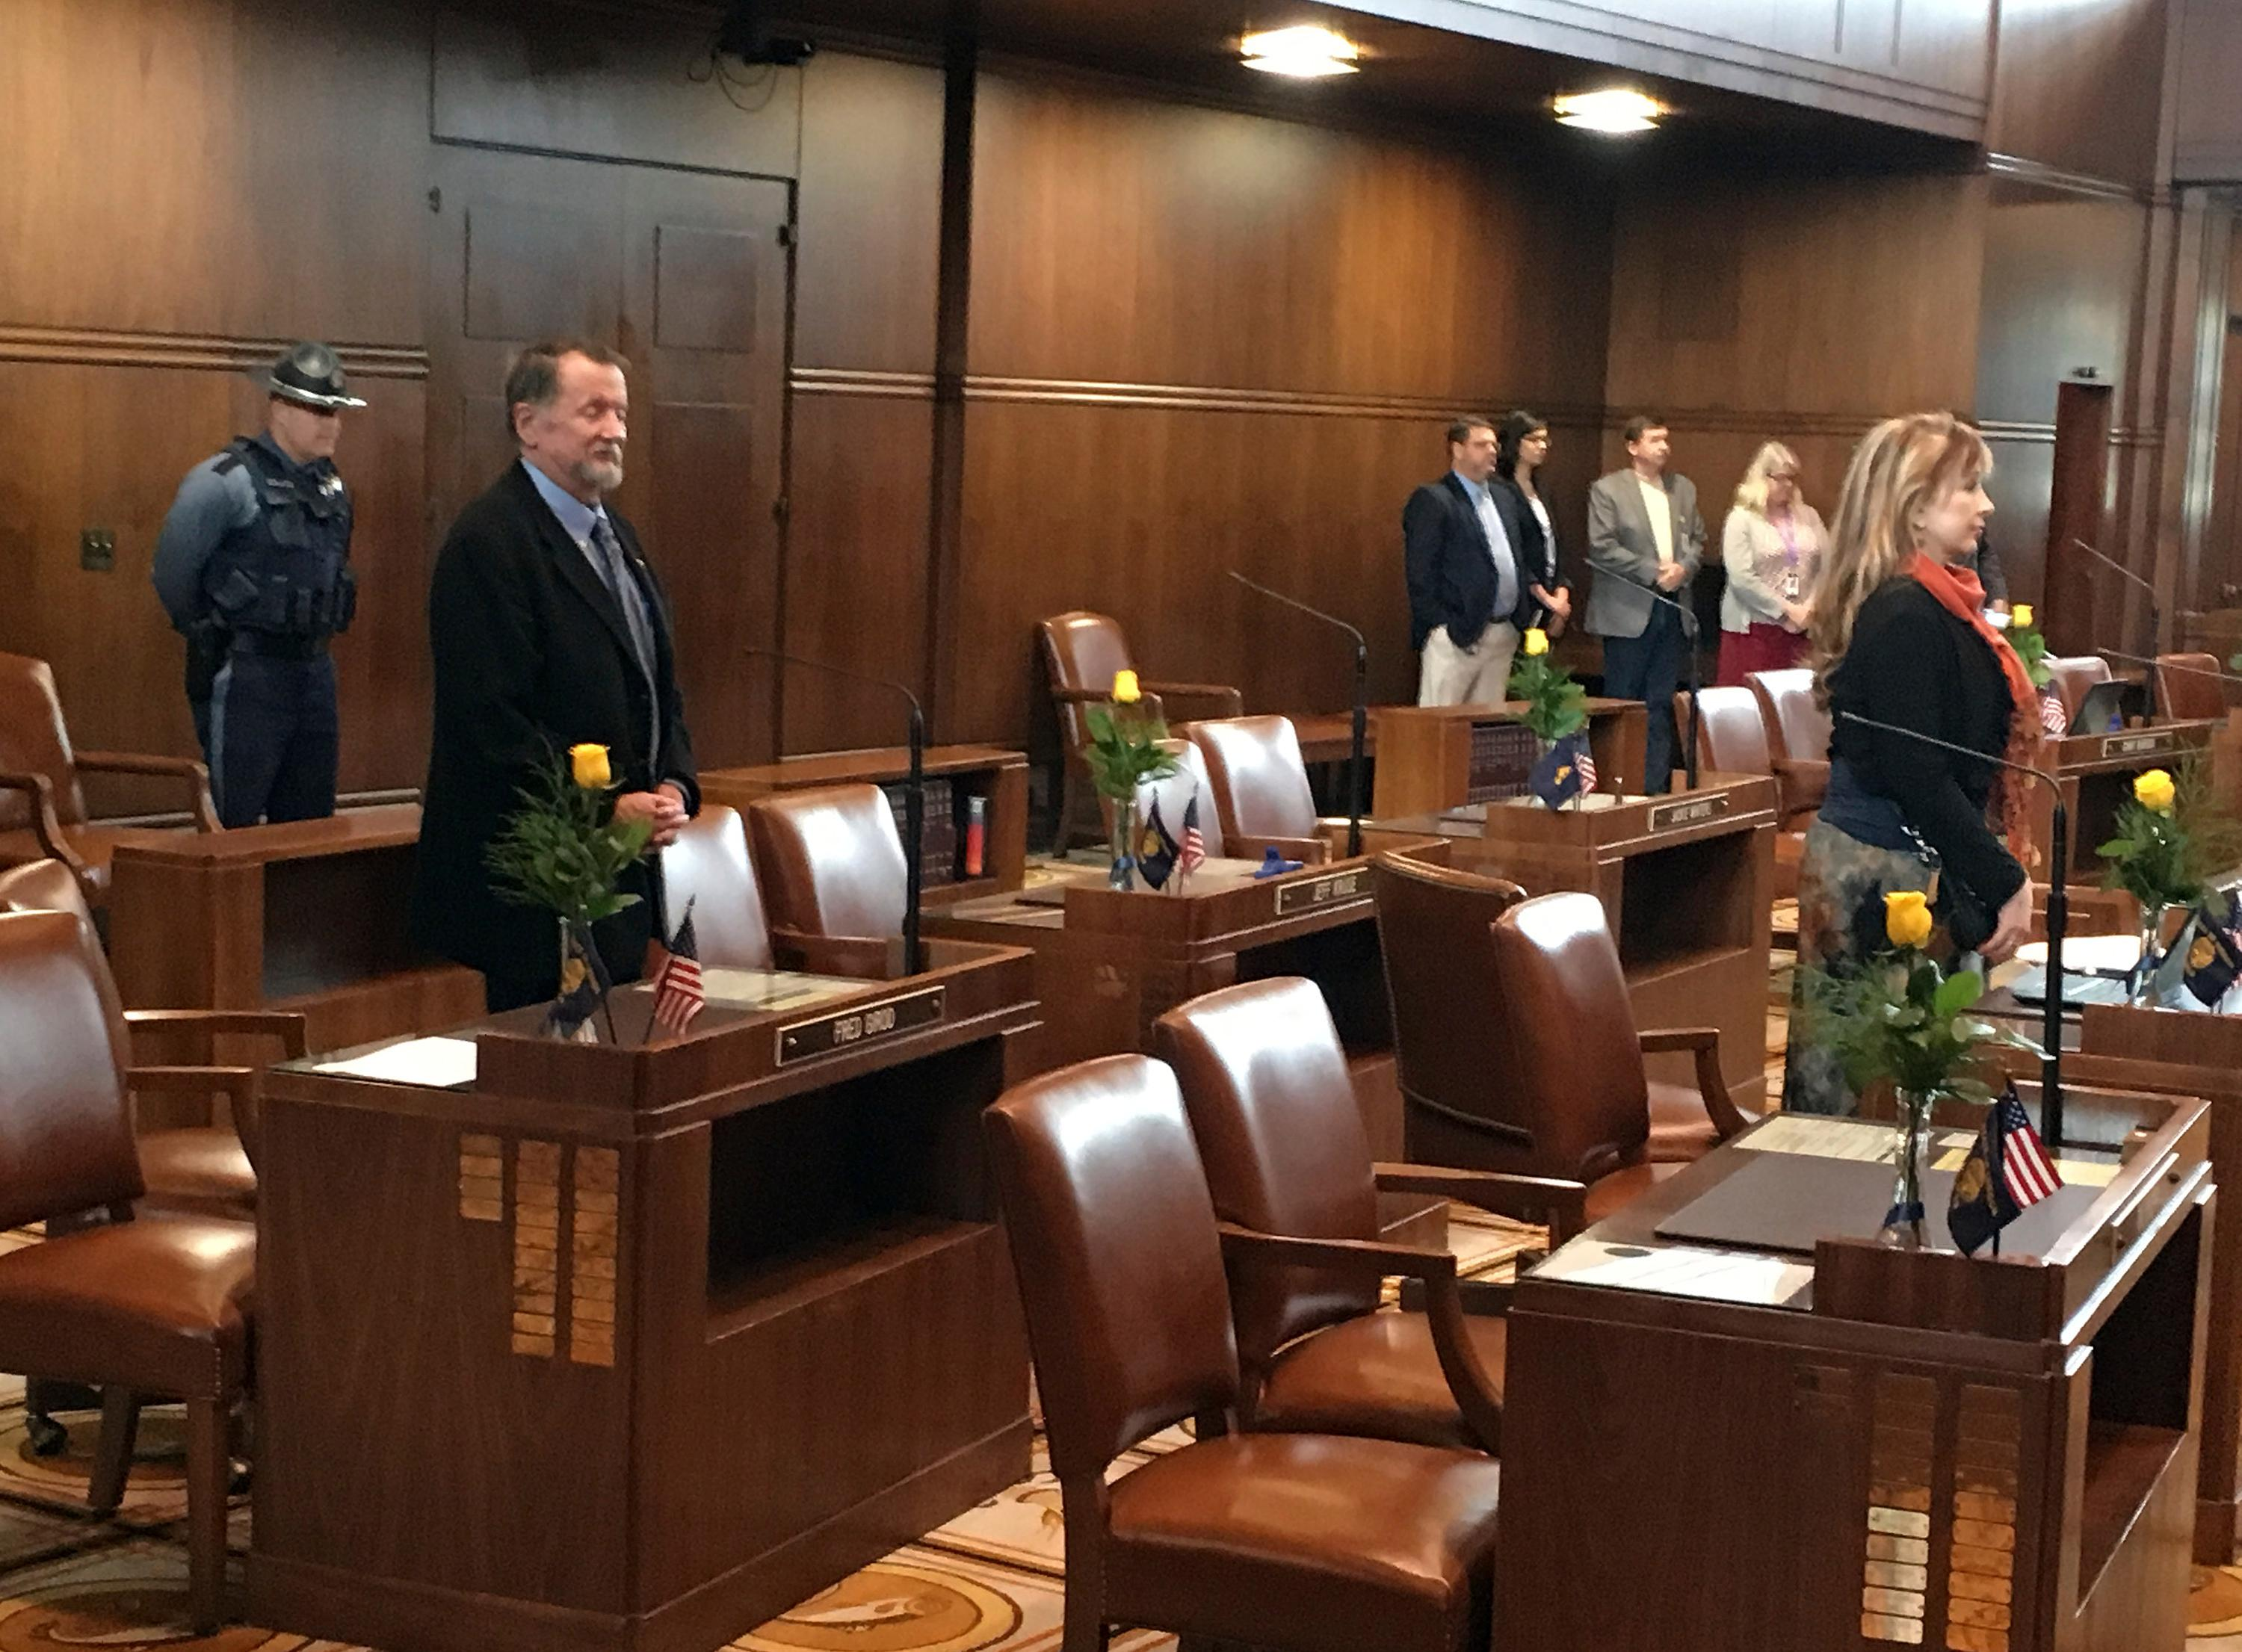 Oregon state Sen. Jeff Kruse's desk, center left, is empty as senators attend Legislative opening ceremonies at the Capitol on Wednesday, Feb. 7, 2018, a day after a report accused him of harassment and the governor and house speaker called for him to resign. Kruse didn't appear as Wednesday's session commenced and he was not in his capitol office. (AP Photo/Andrew Selsky)